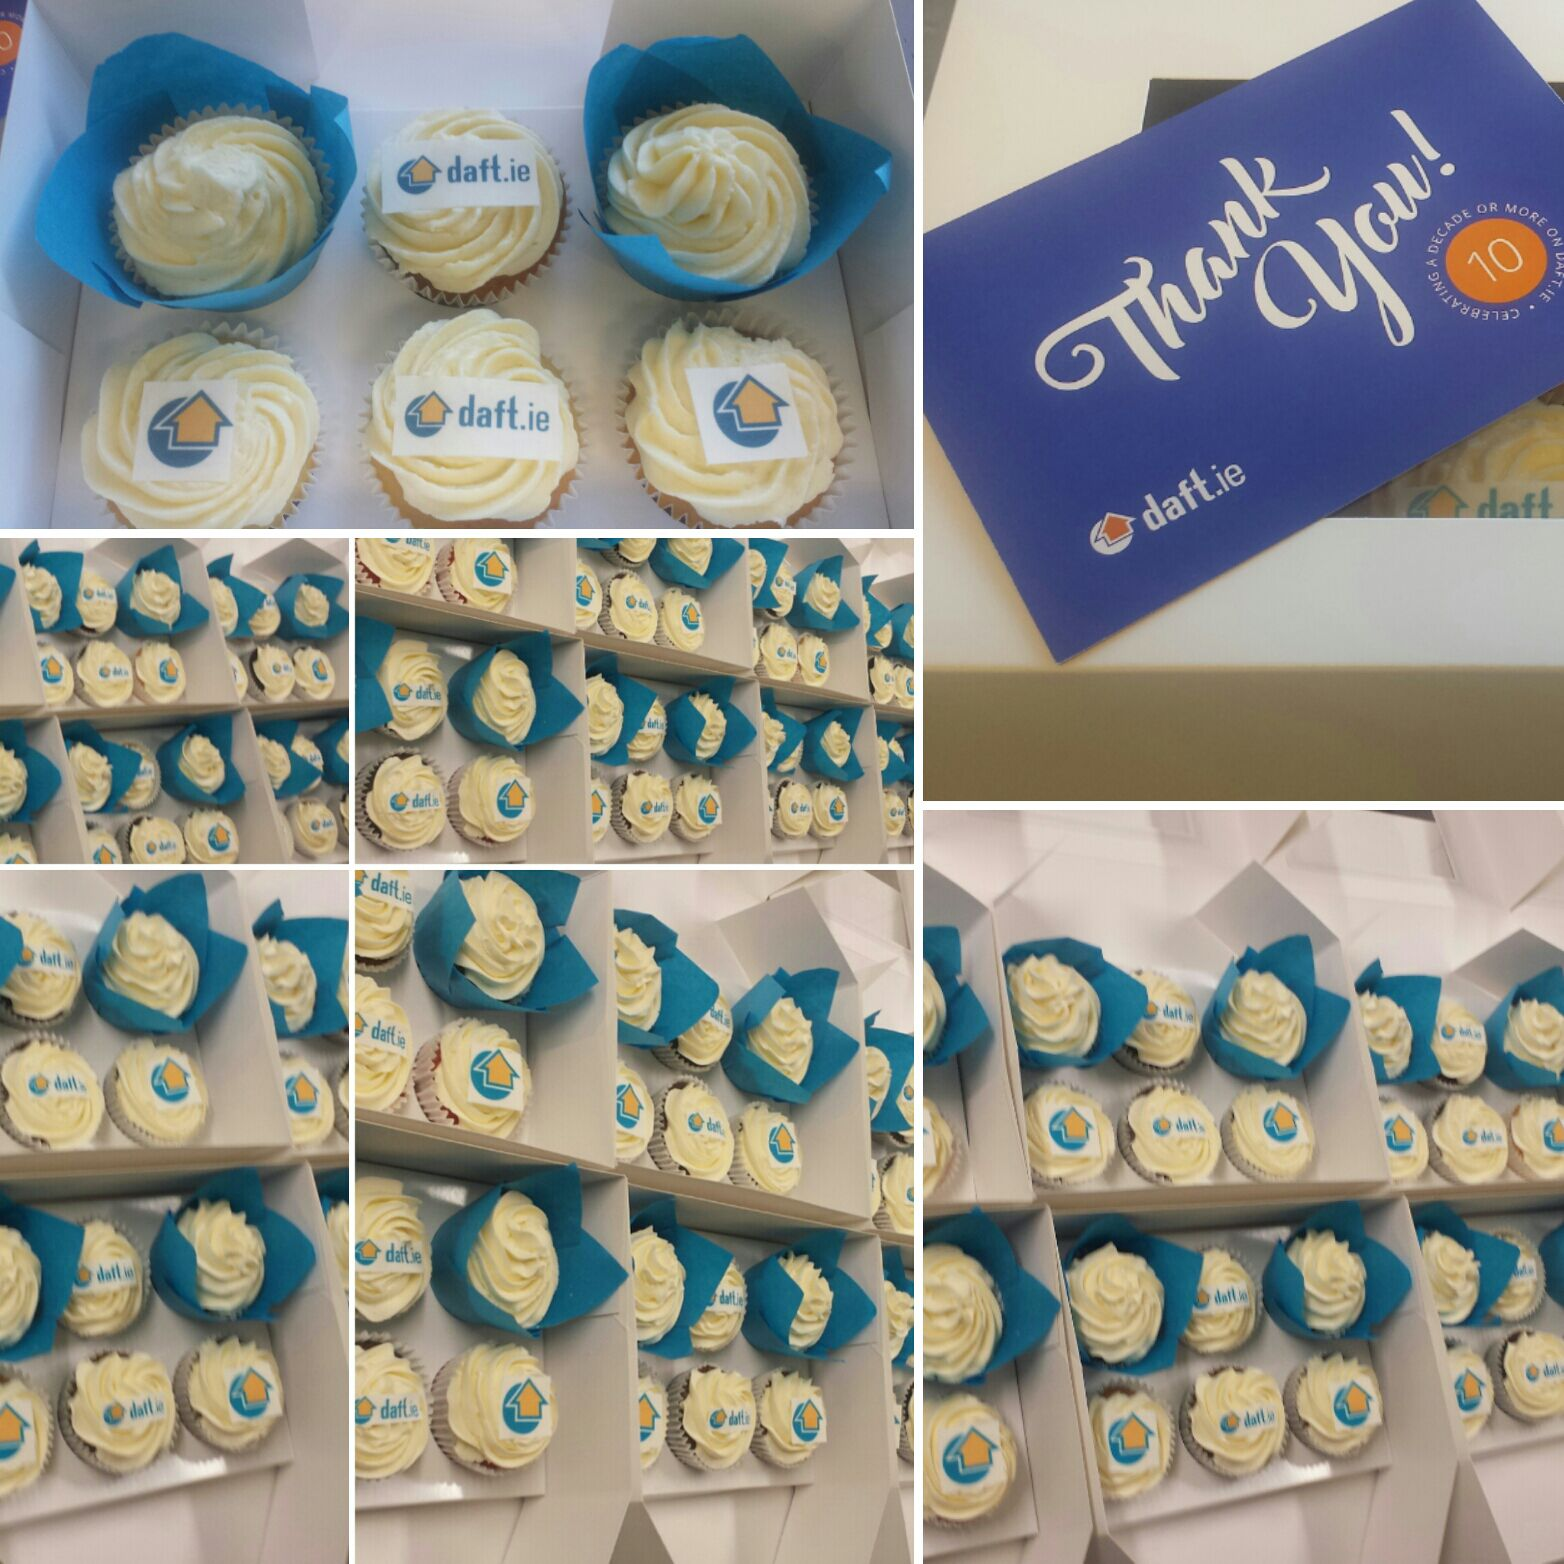 Celebrating 10 years with Daft.ie